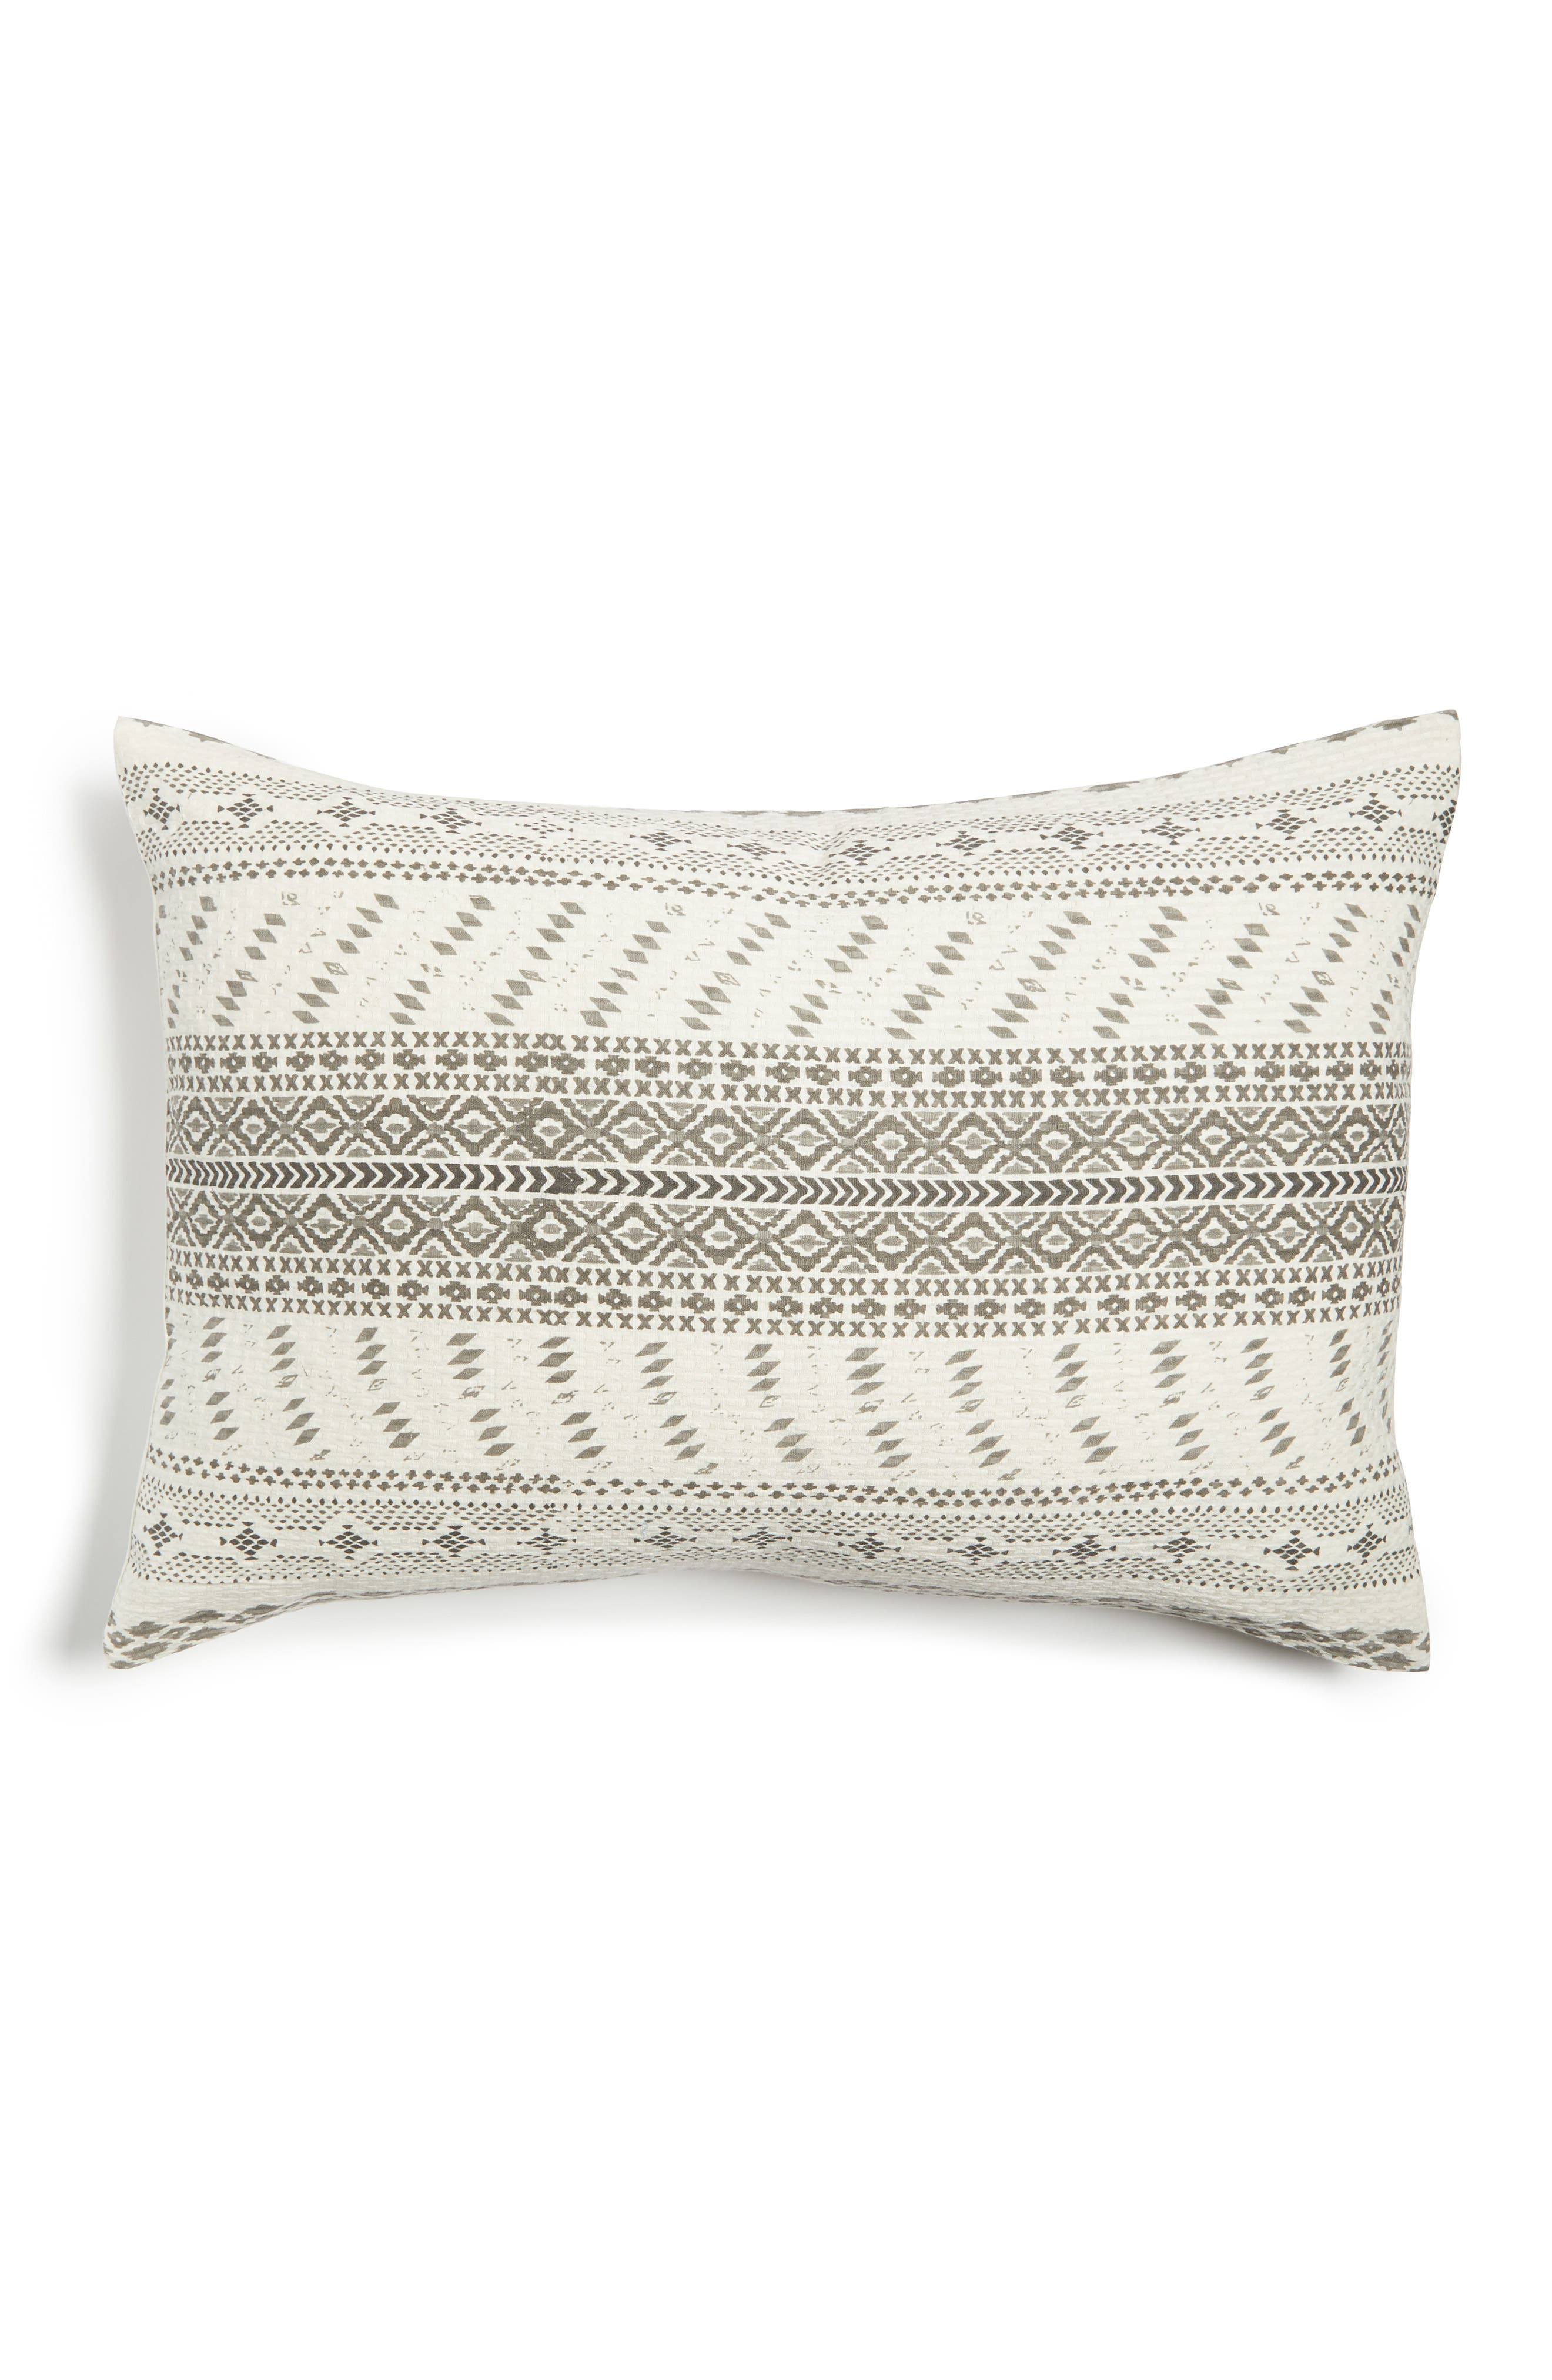 Nordstrom at Home Waffle Print Sham